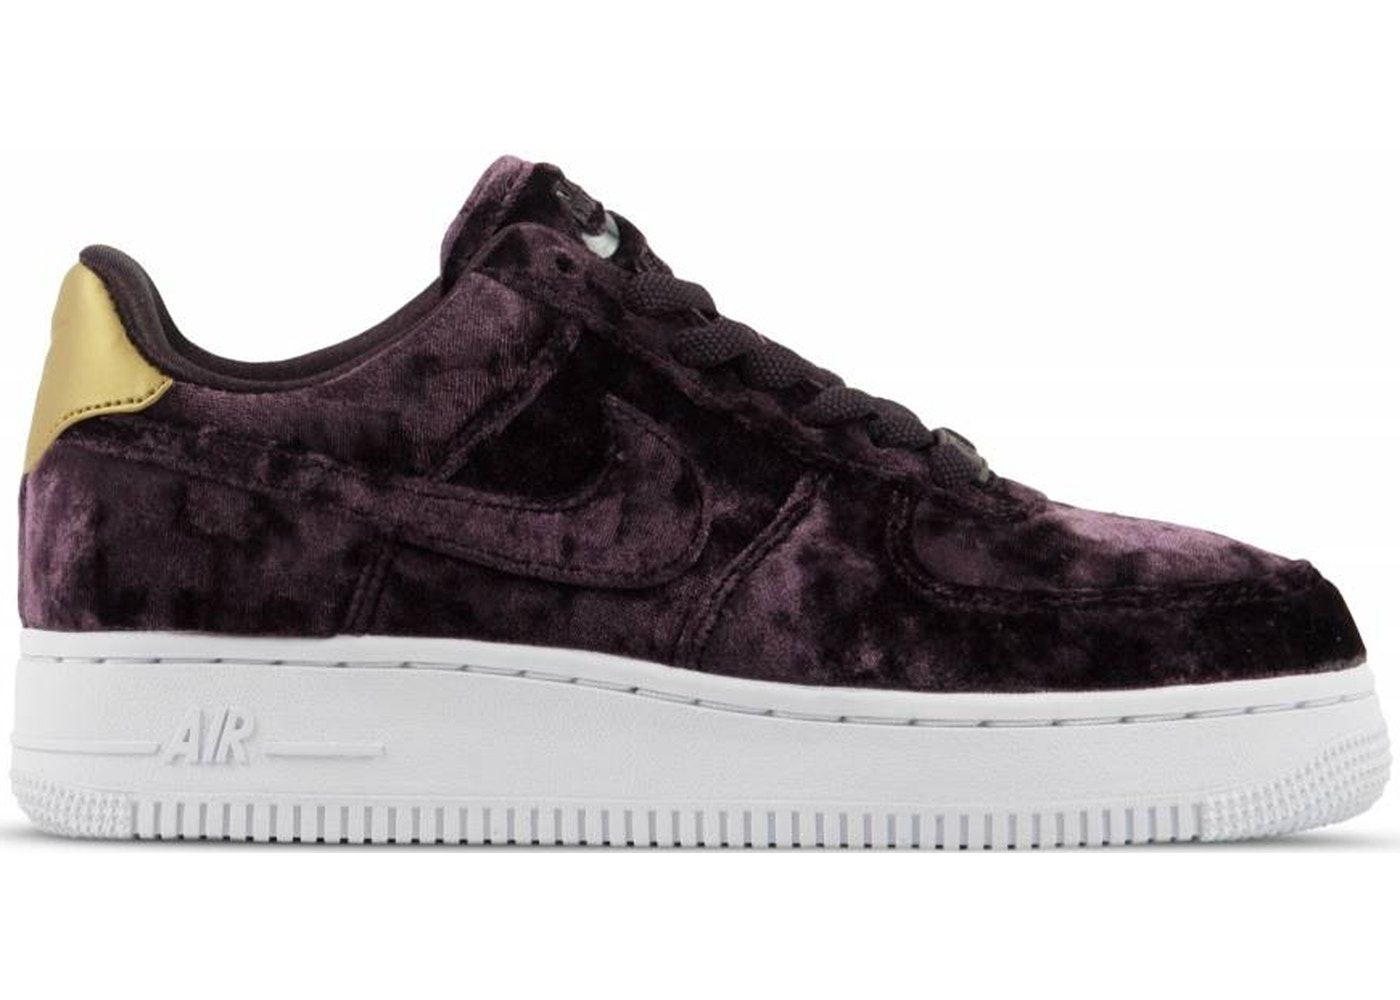 40485930 Check out the Air Force 1 Low Port Wine Velvet (W) available on StockX